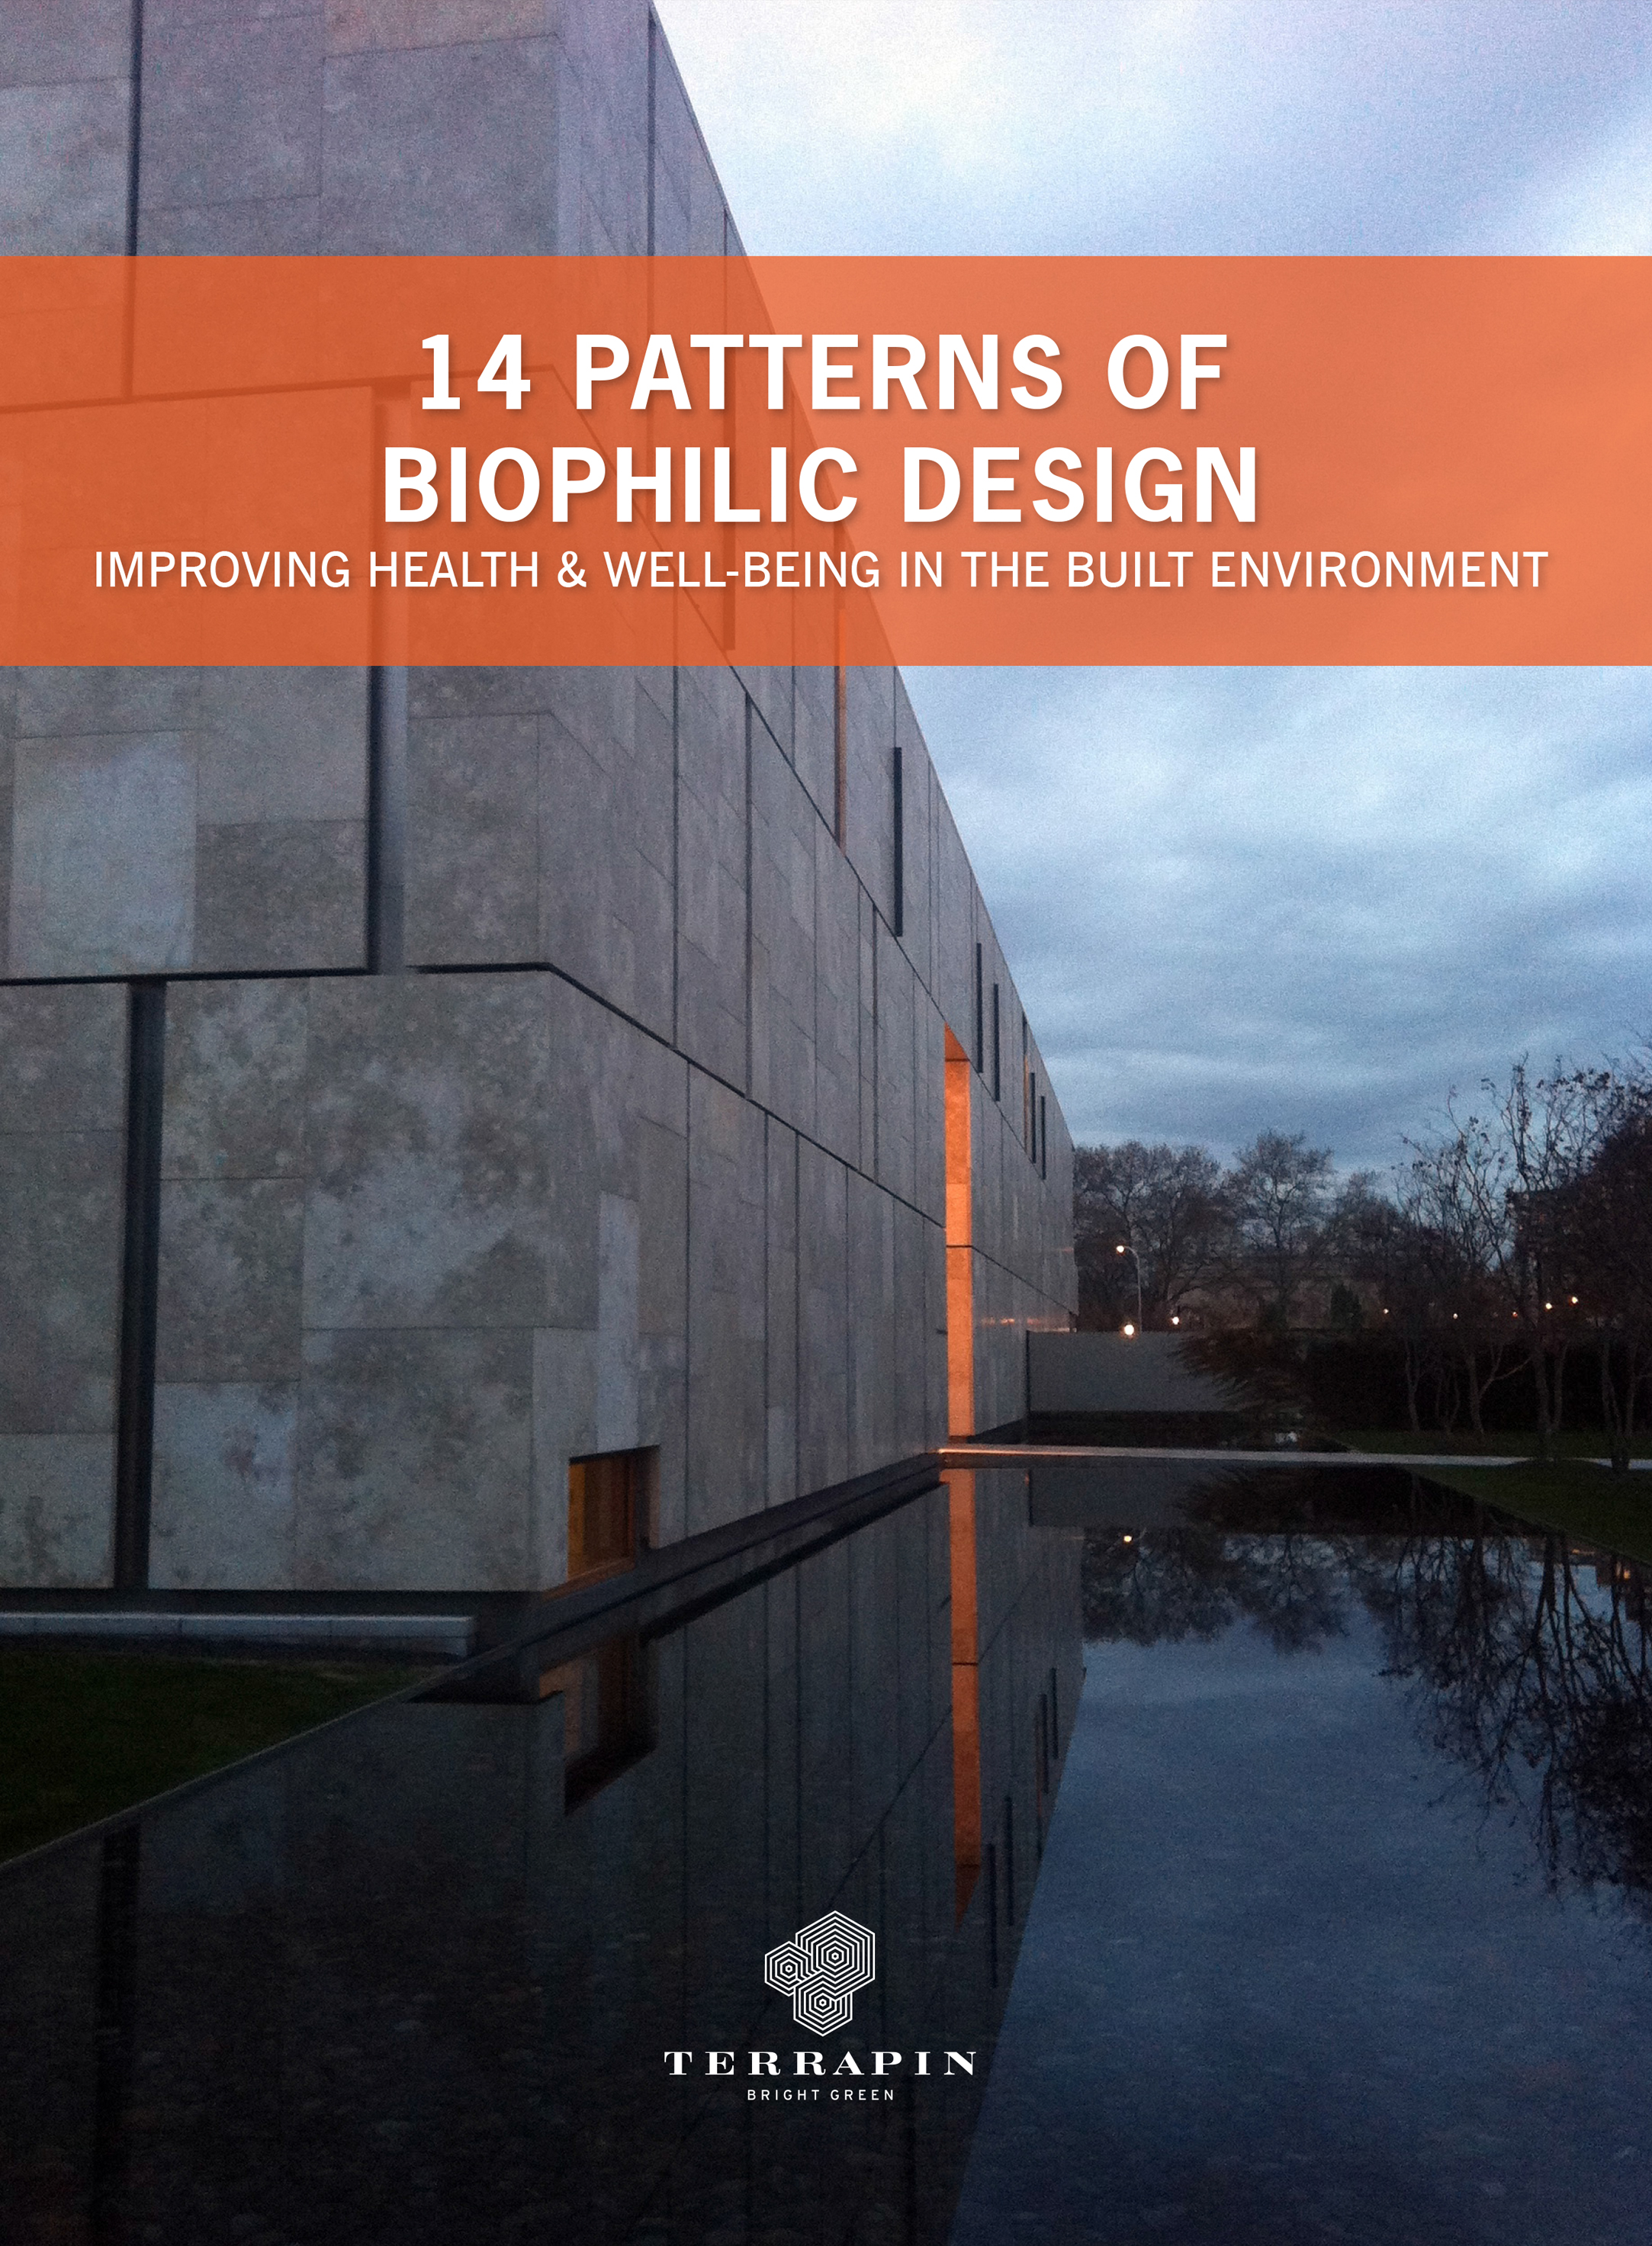 14 patterns of biophilic design